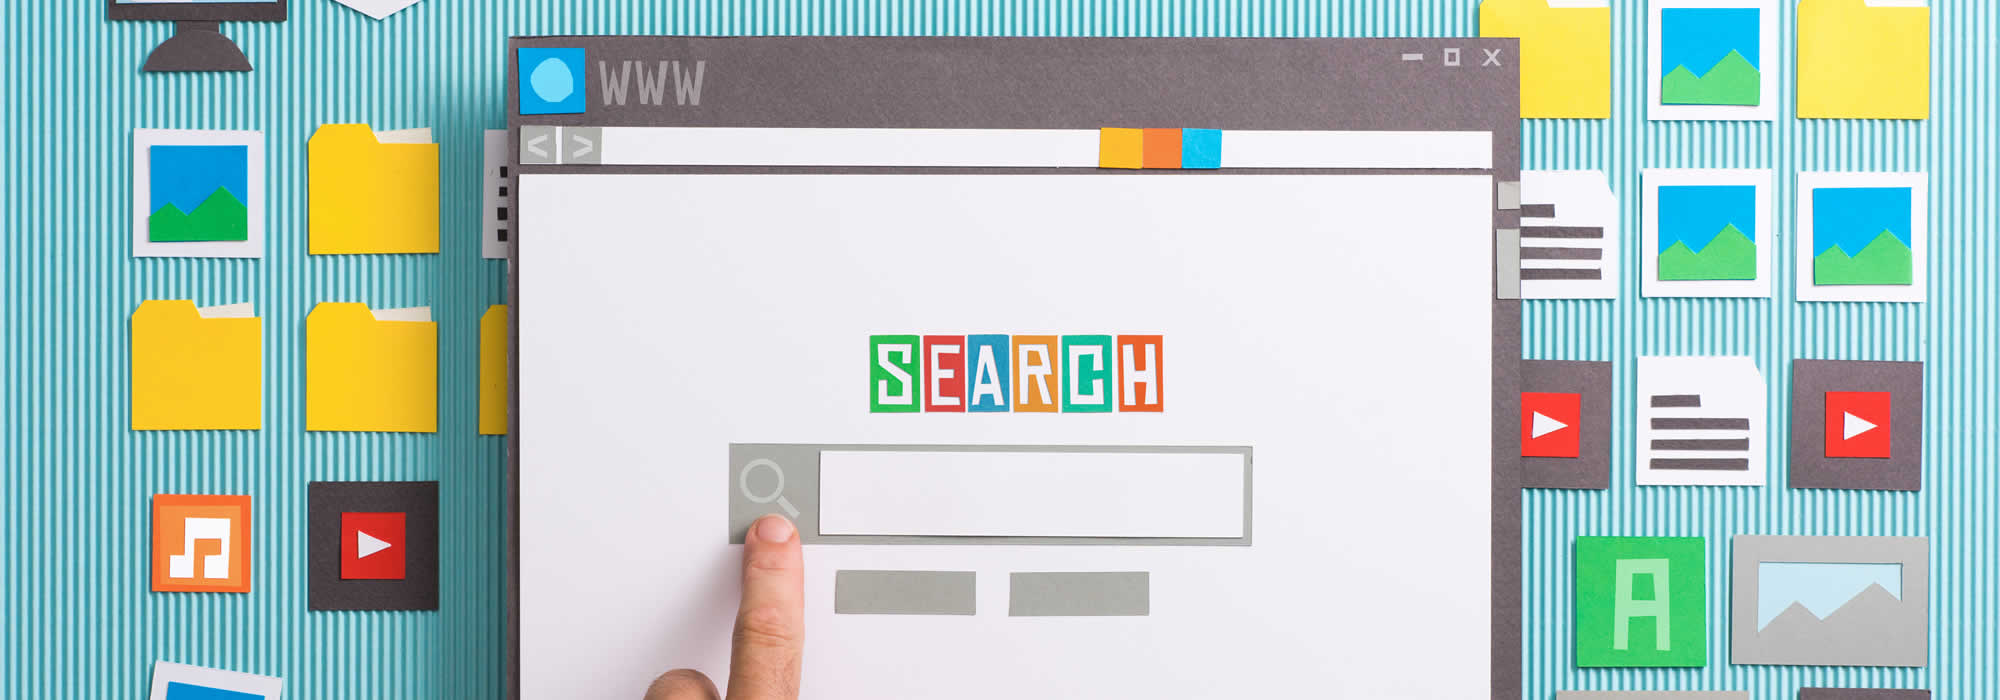 3 surprisingly simple keys to SEO success!